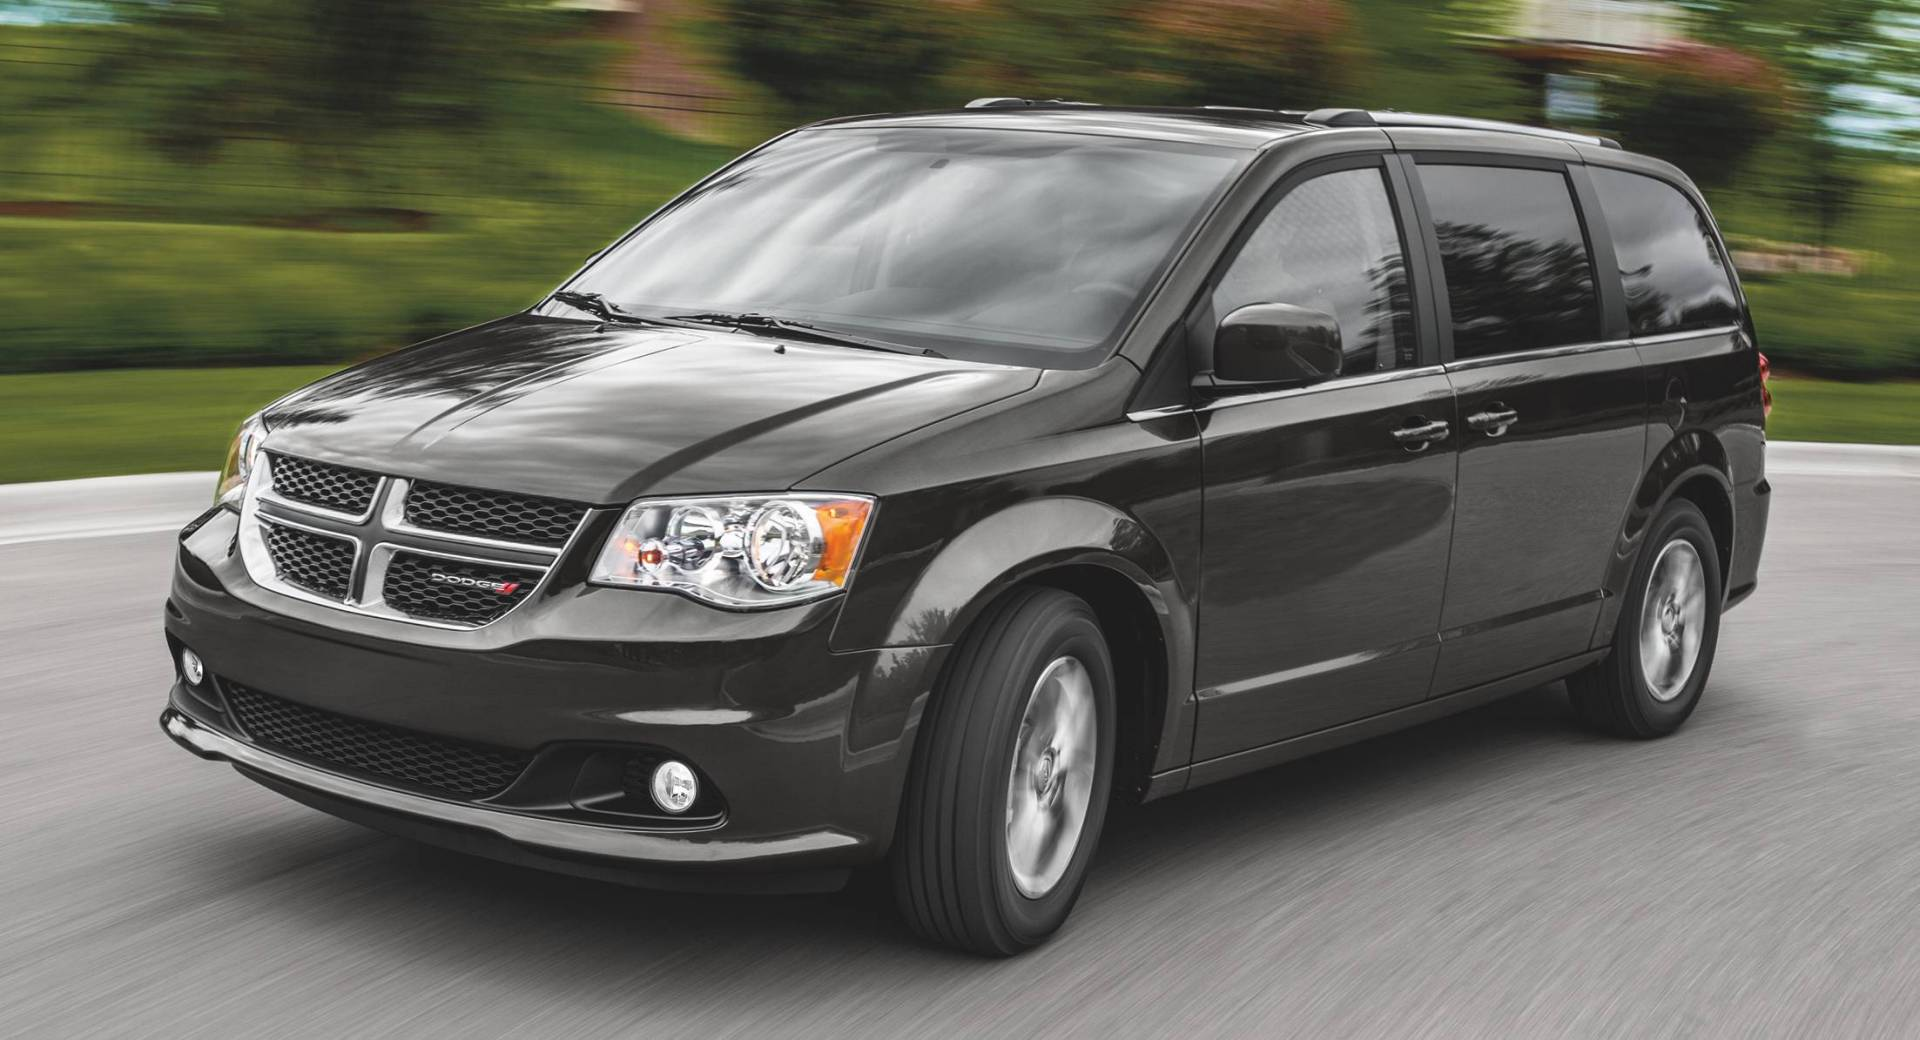 2020 Dodge Caravan Speed Test